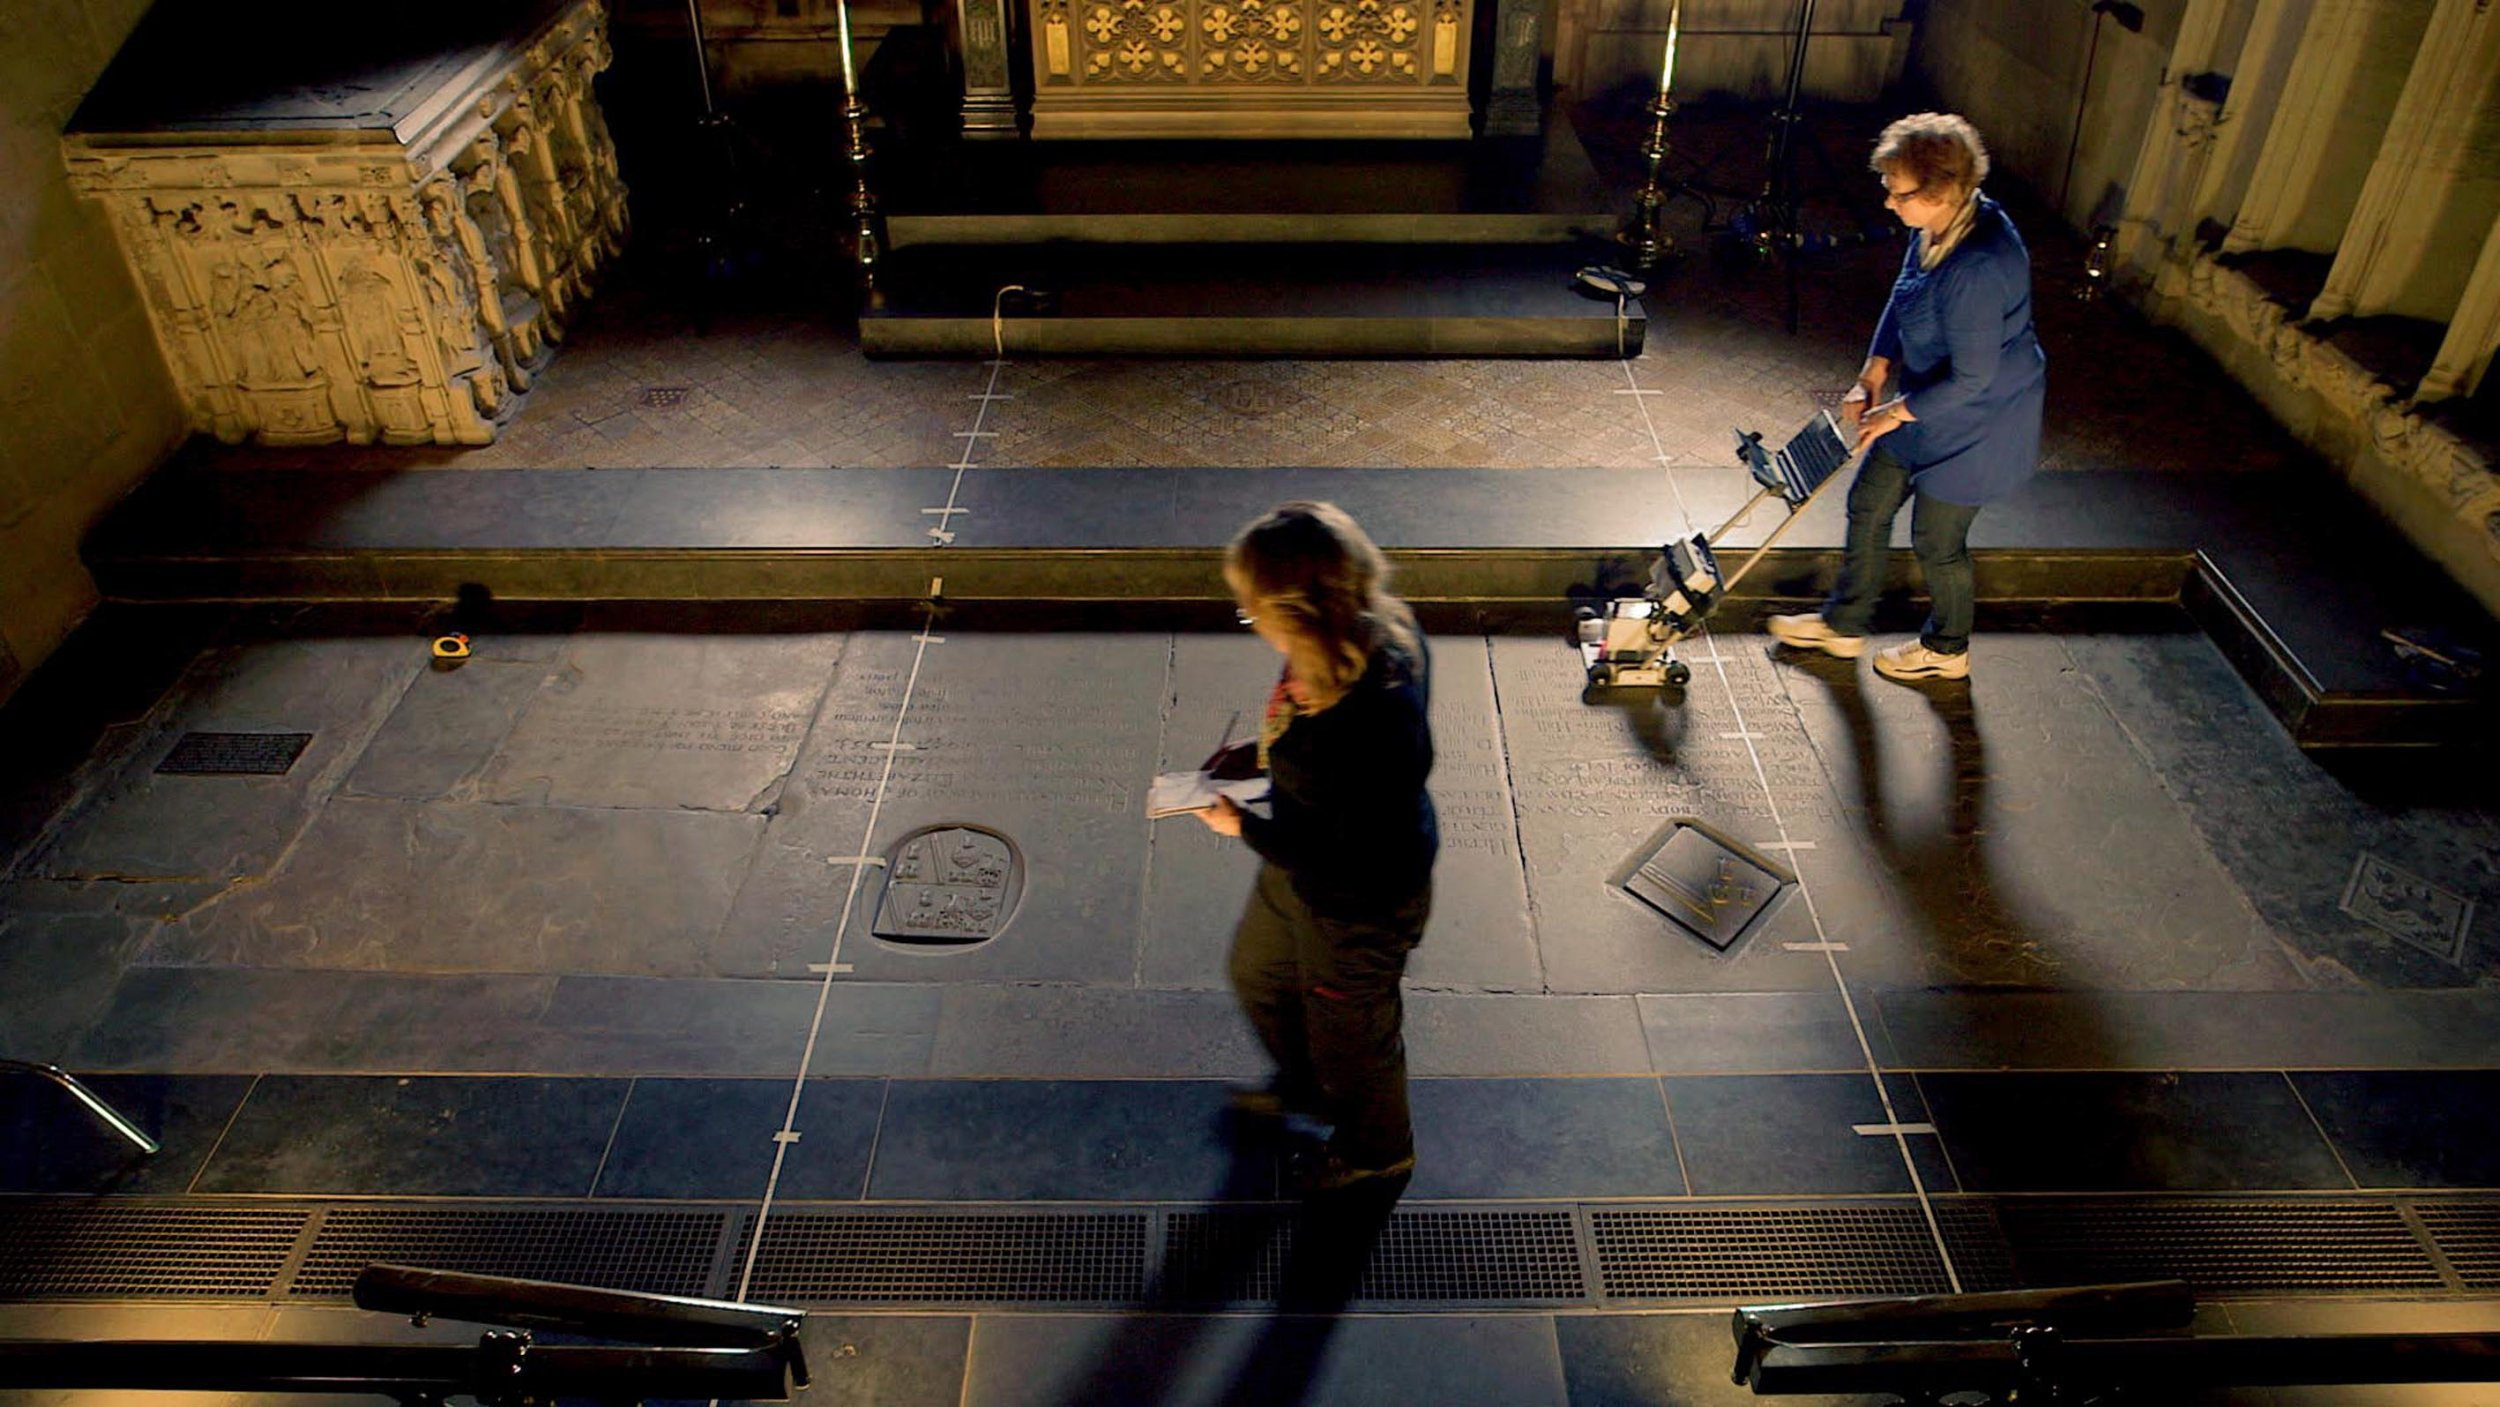 Shakespeare's Tomb on Channel 4